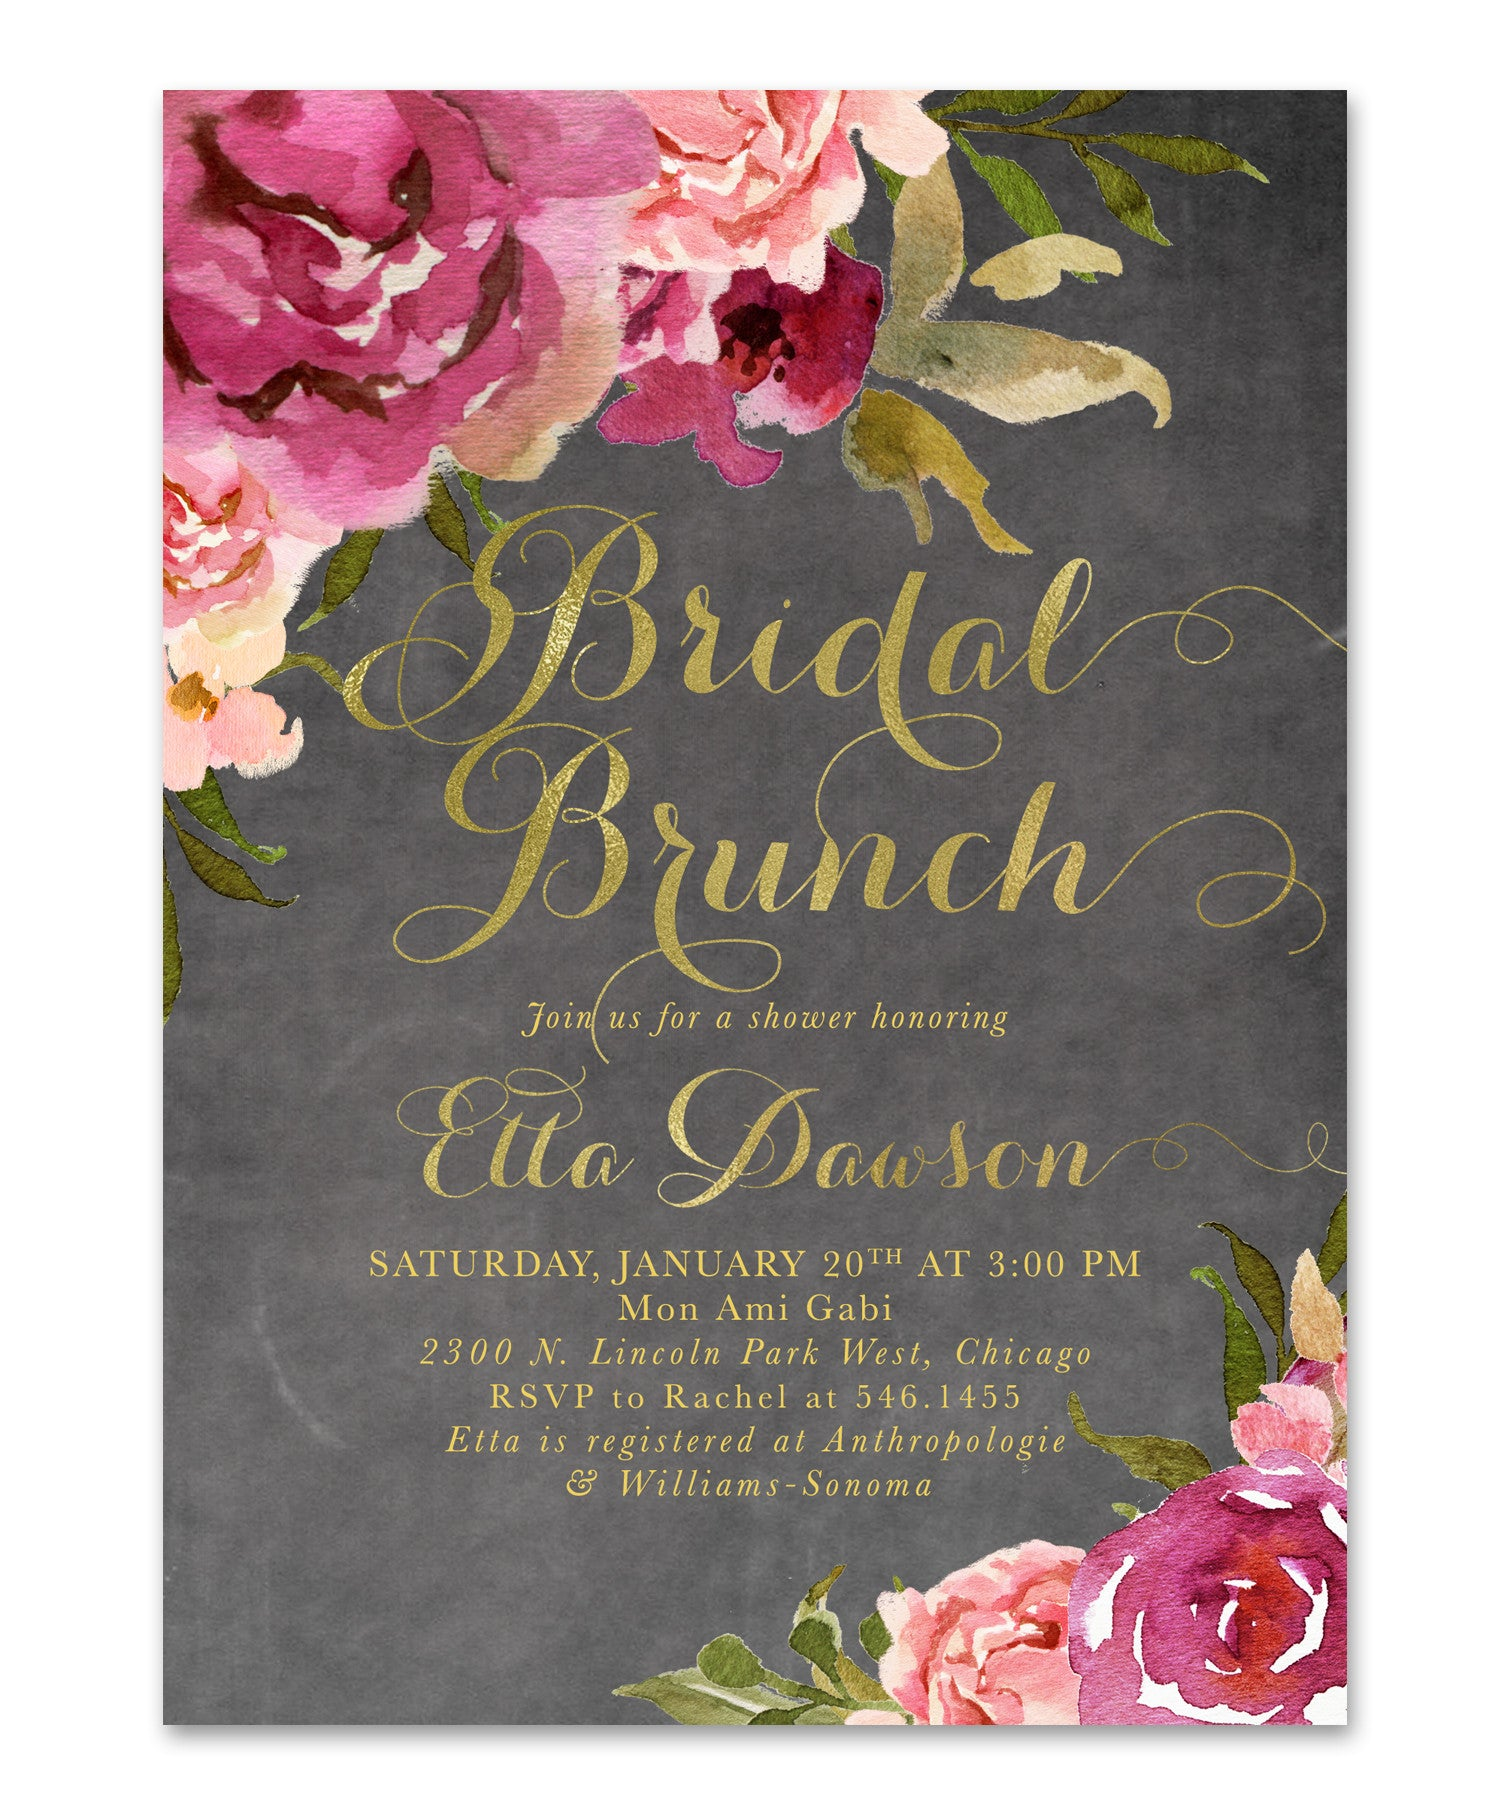 Etta Bridal Shower Brunch Invitation Burgundy Blush Pink Gold